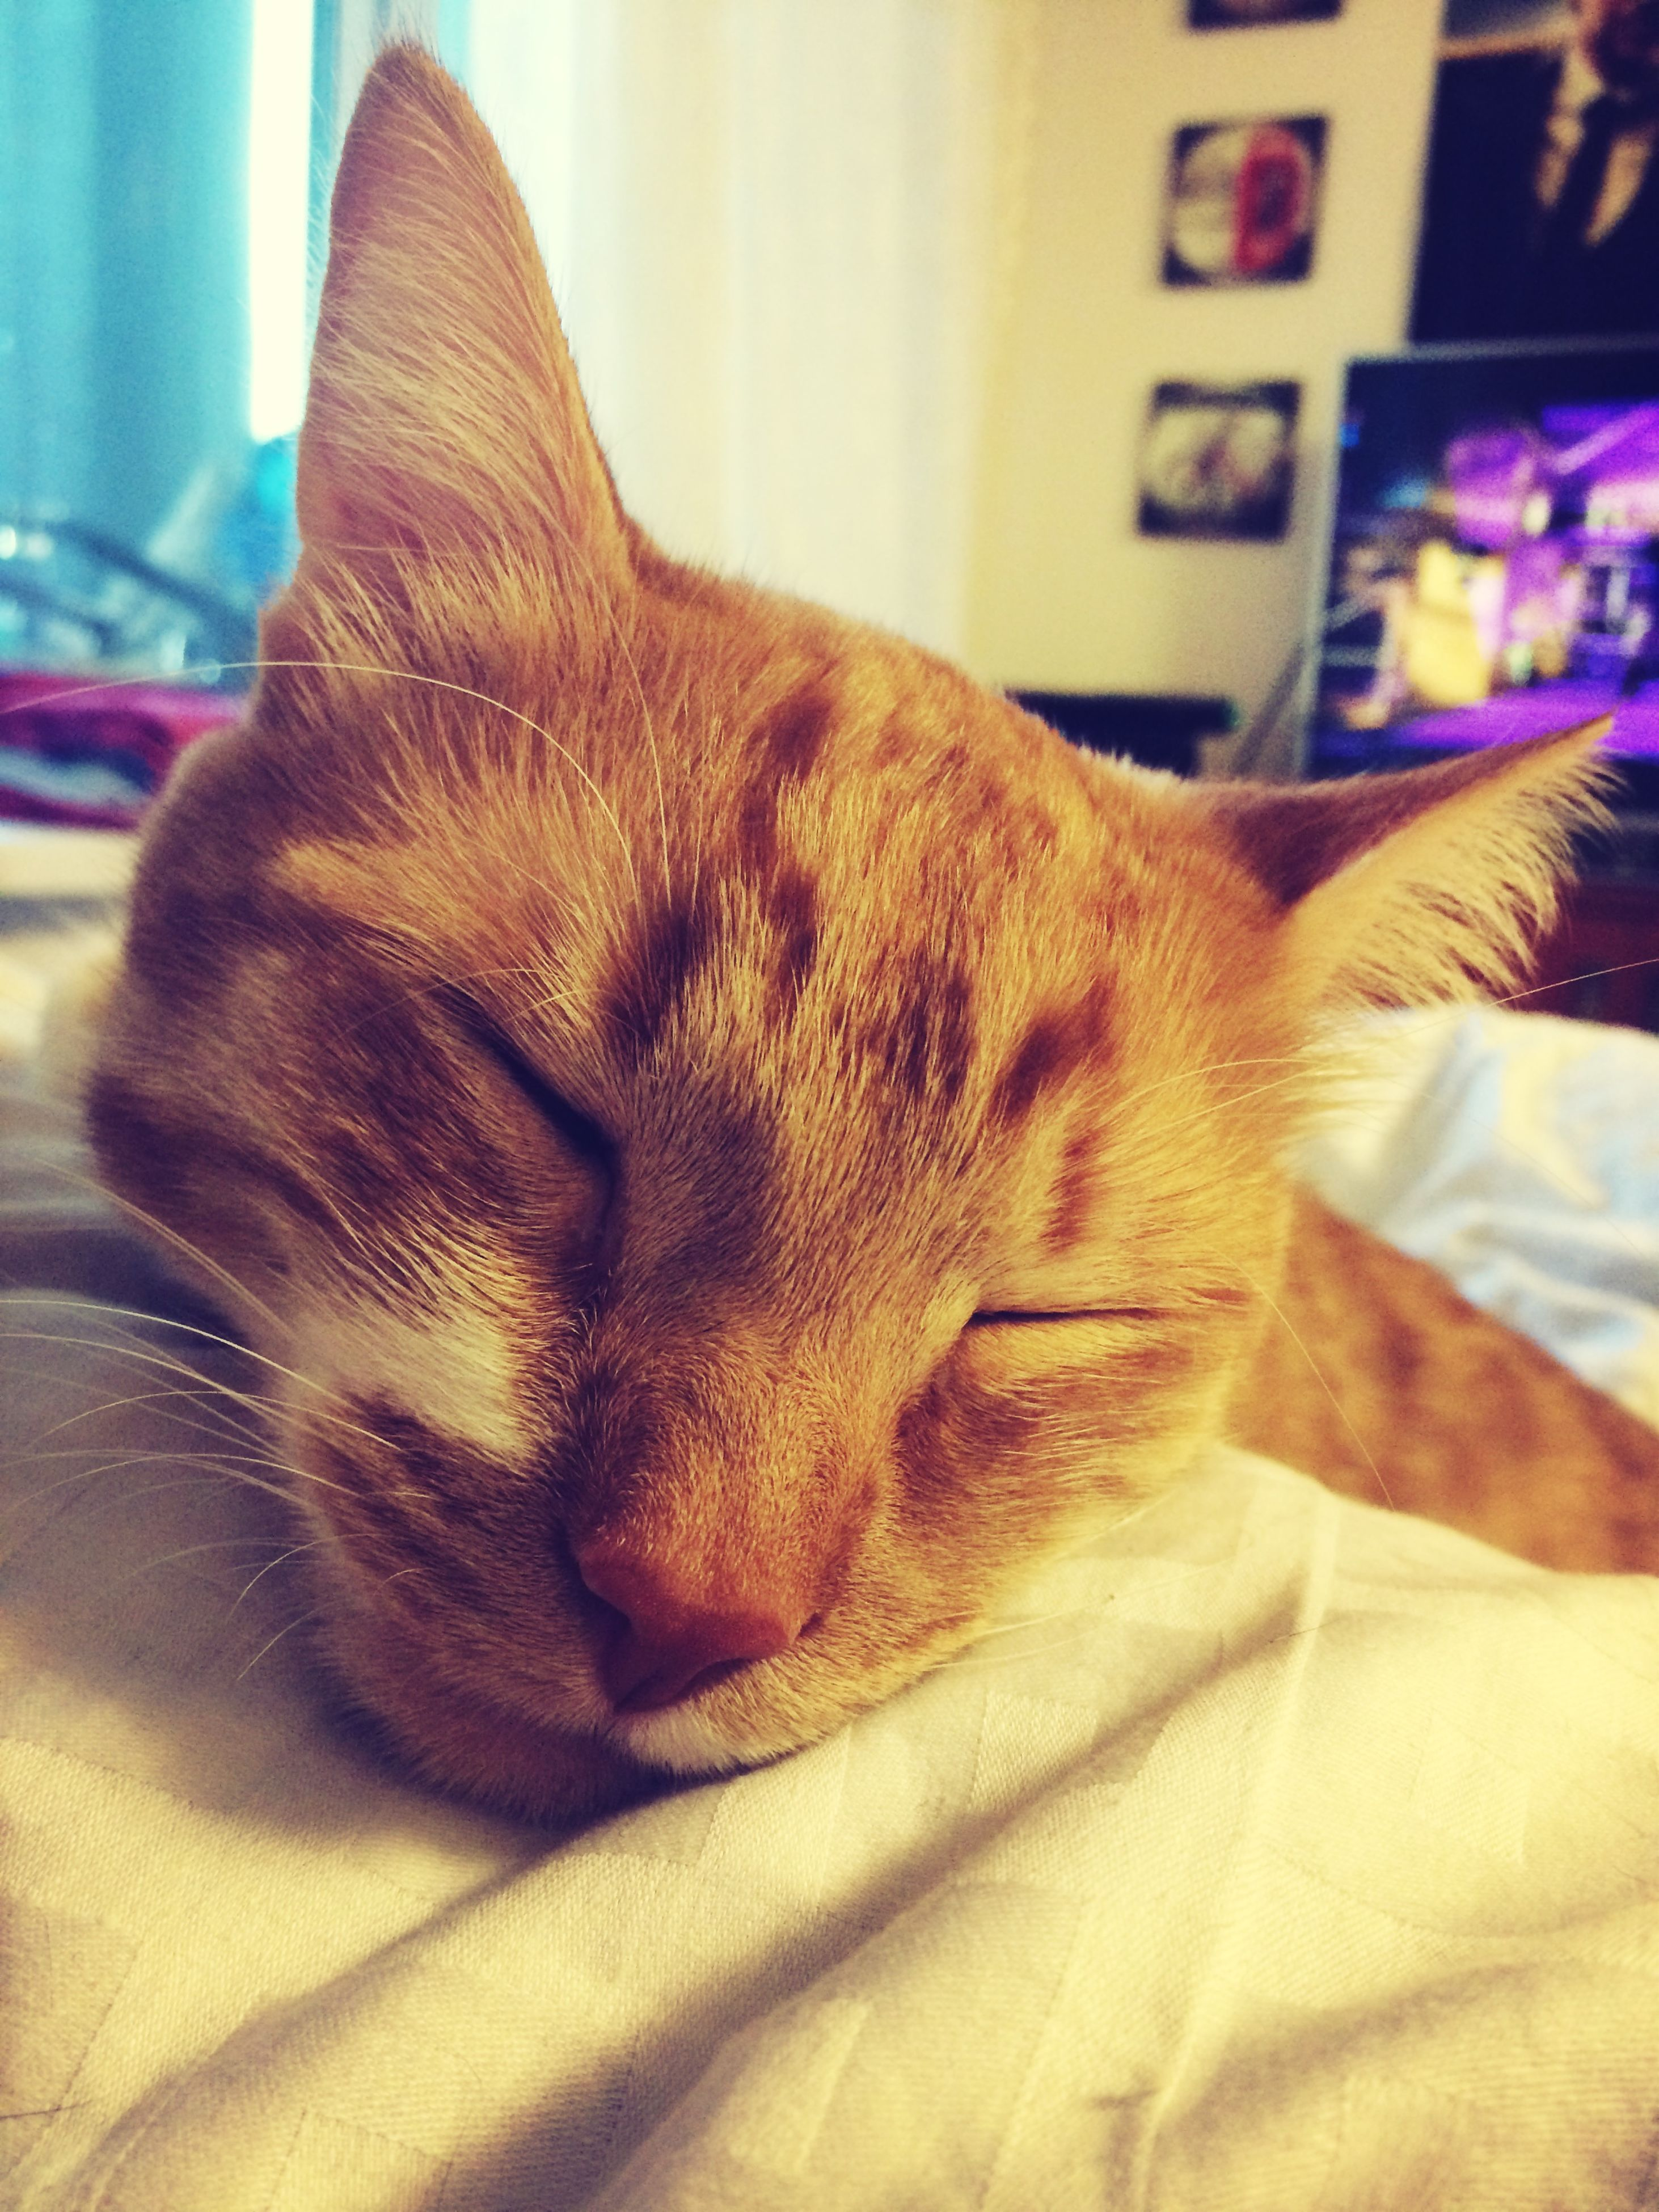 indoors, domestic animals, pets, one animal, mammal, animal themes, relaxation, sleeping, resting, lying down, bed, close-up, home interior, eyes closed, domestic cat, animal head, cat, dog, feline, home